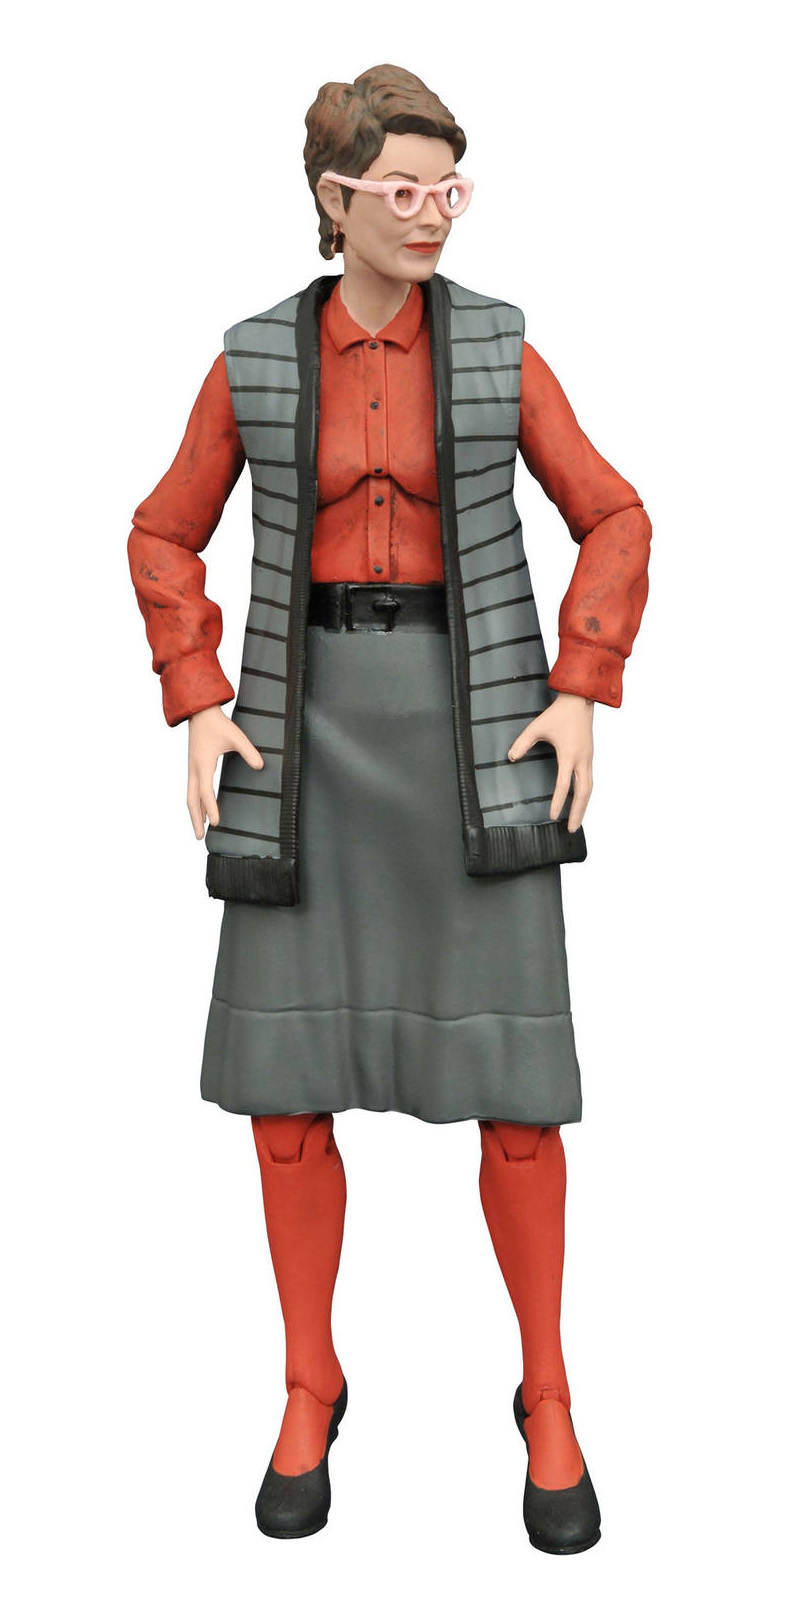 Diamond Select Ghostbusters: Janine Melnitz Action Figure